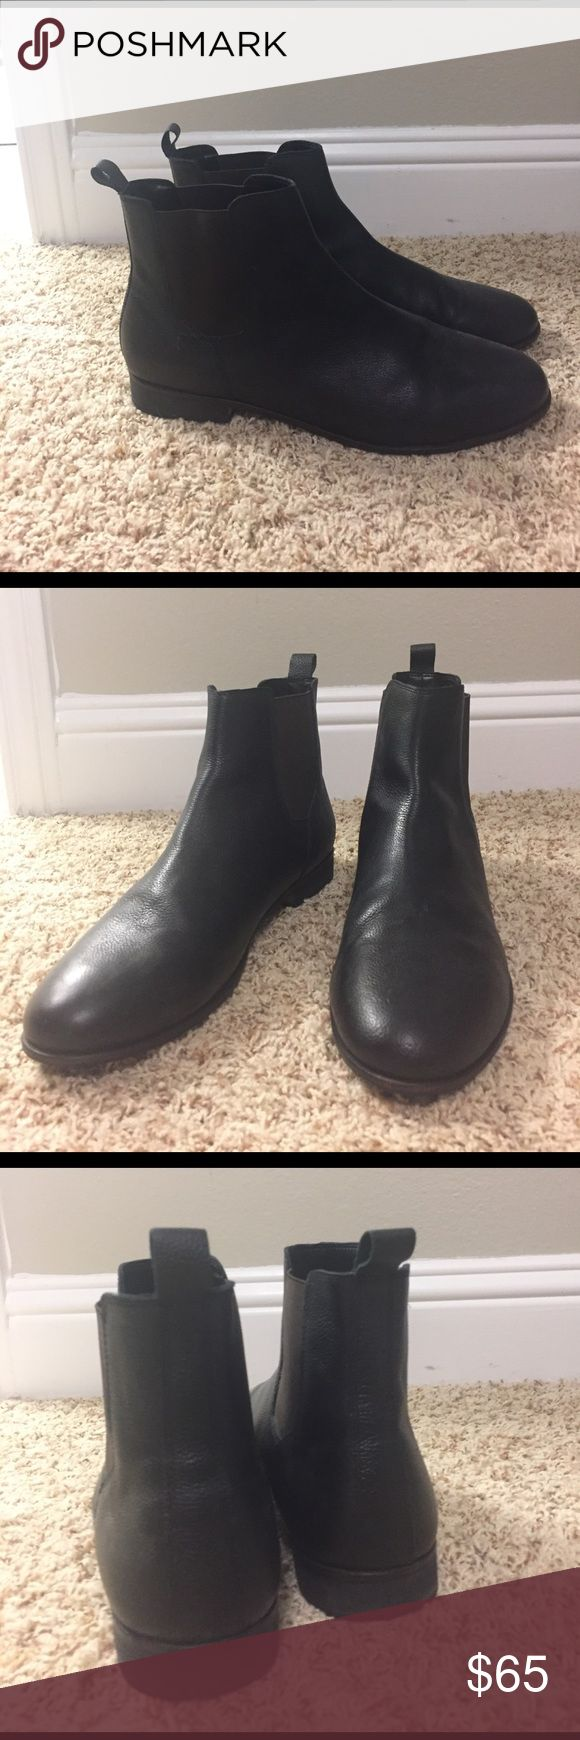 Black leather Chelsea Boot Hawking McGill Black leather Chelsea Boot from Urban Outfitters, hardly worn Urban Outfitters Shoes Boots